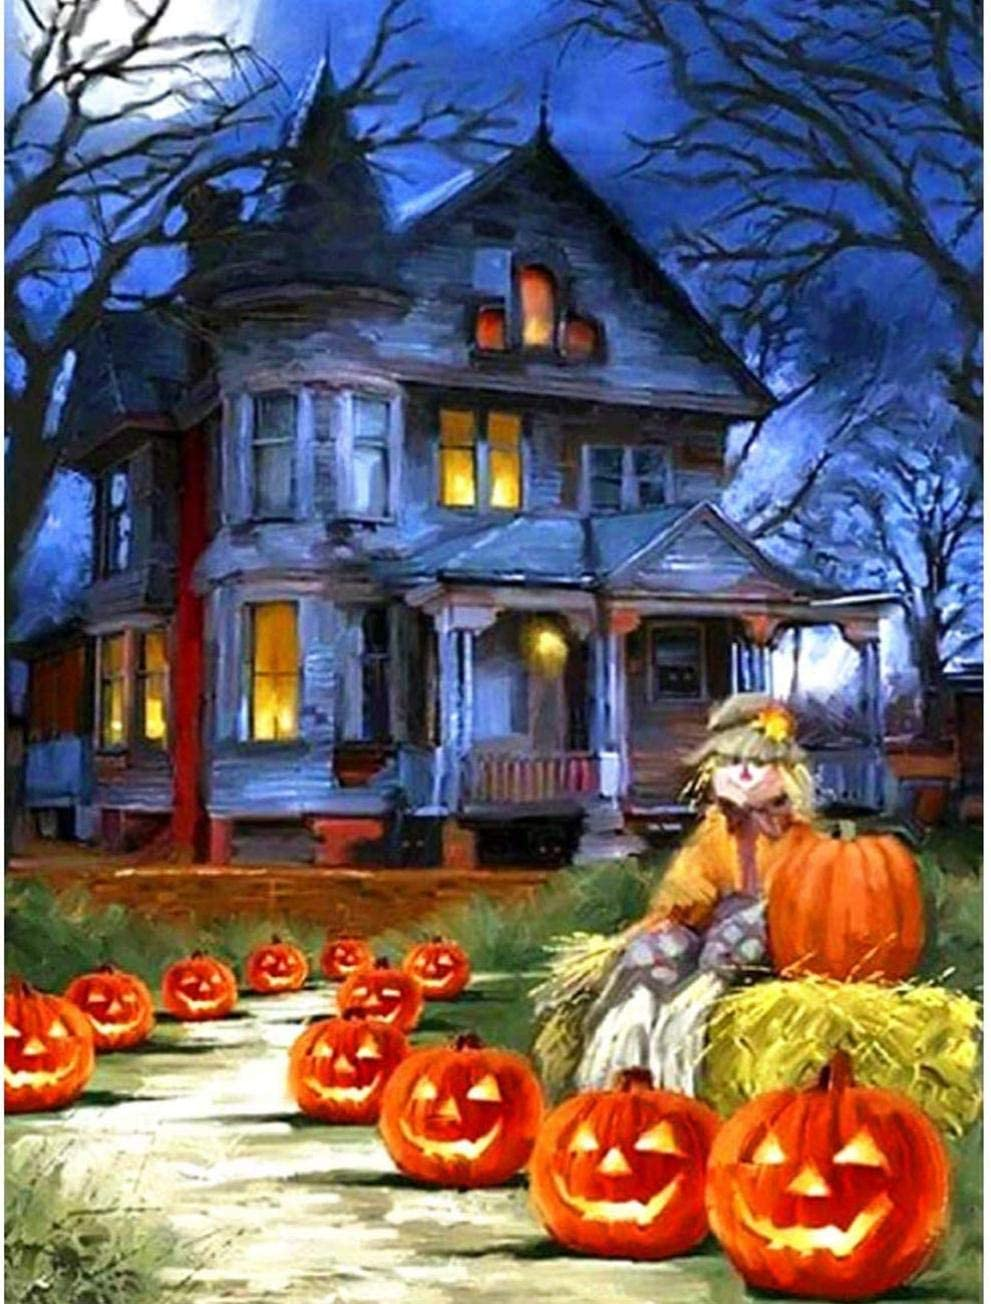 Zhaokunpeng 5D Full Drill Diamond Painting Halloween Haunted House Jack-O-Lantern Road By Number Kits Pintar Con Diamantes Artes Bordado Diy Craft Set Decoraciones Artísticas (12X16 Inch)